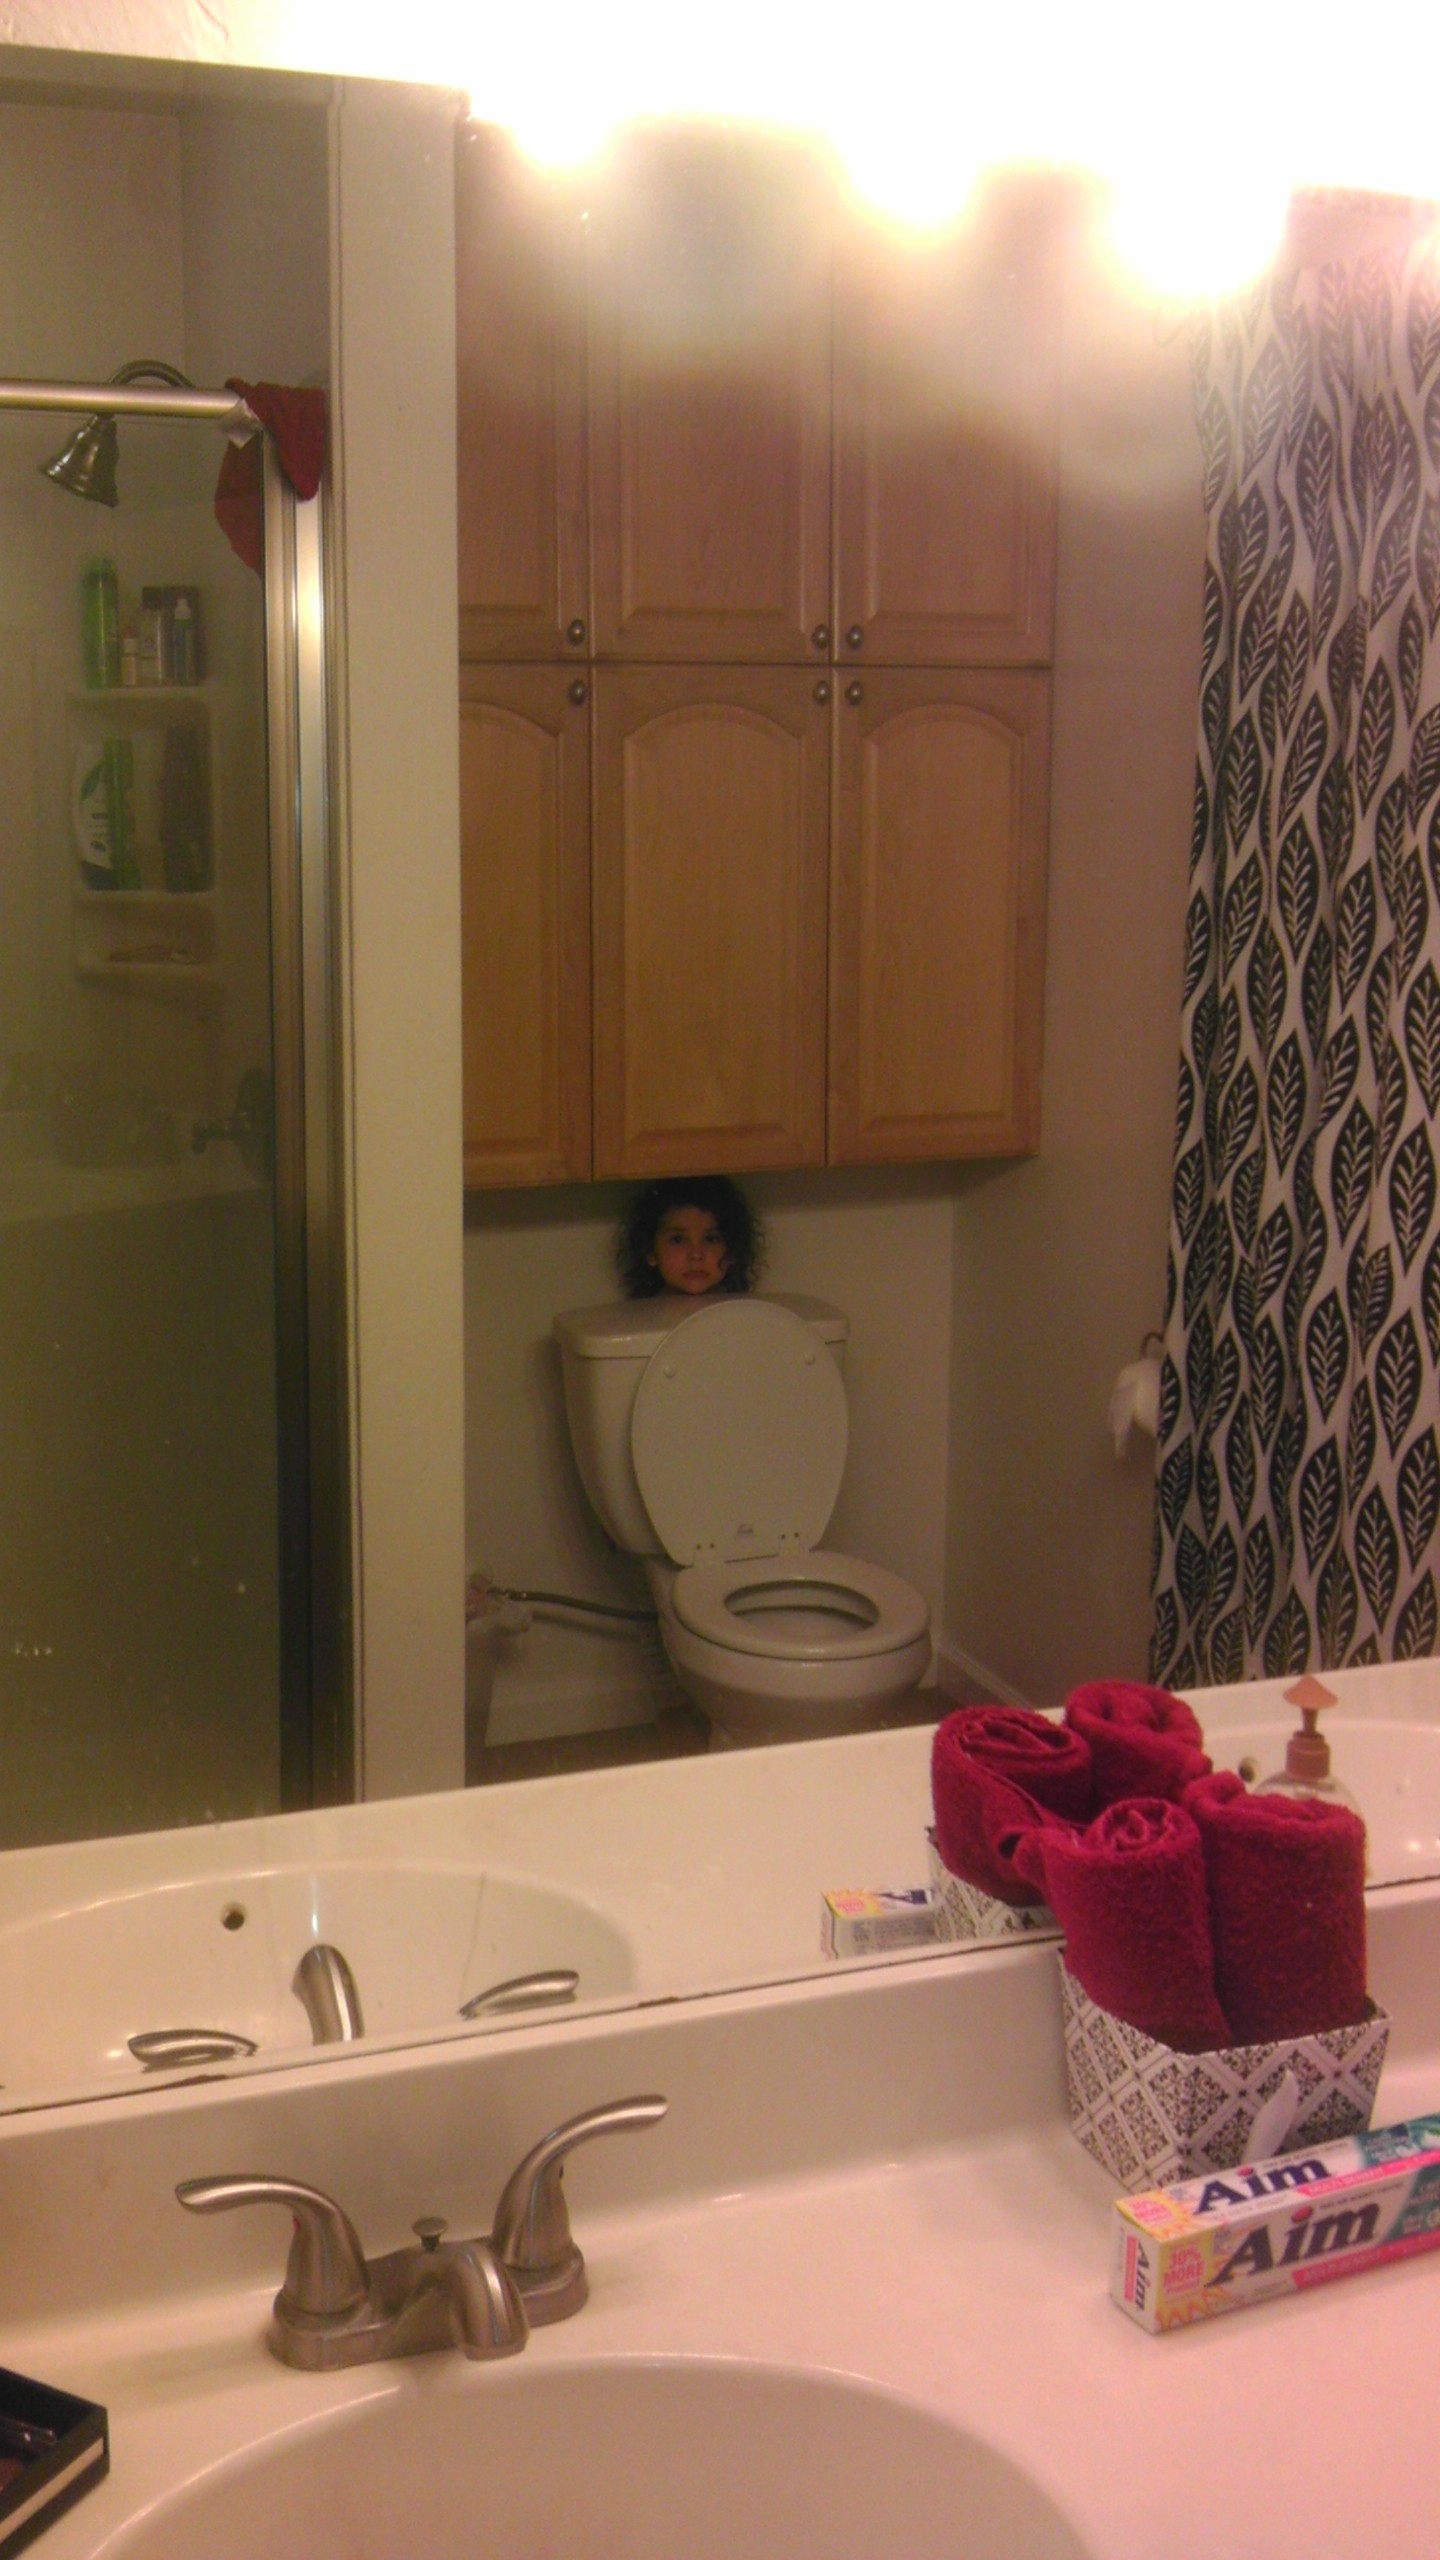 17 Hide And Seek Fails That Will Make You Lol